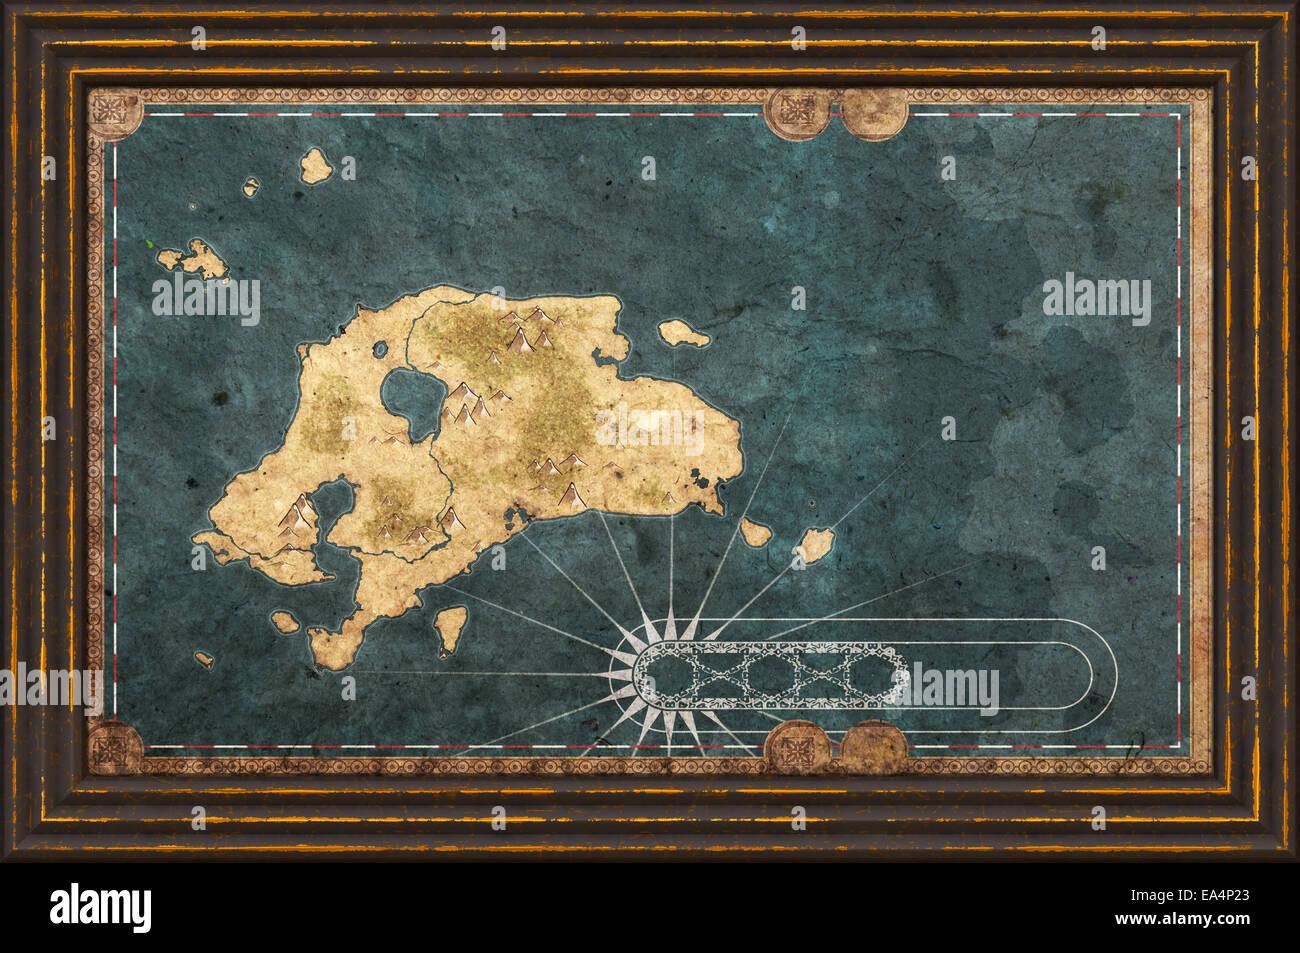 Old textured fantasy map of an island in a frame Stock Photo ...